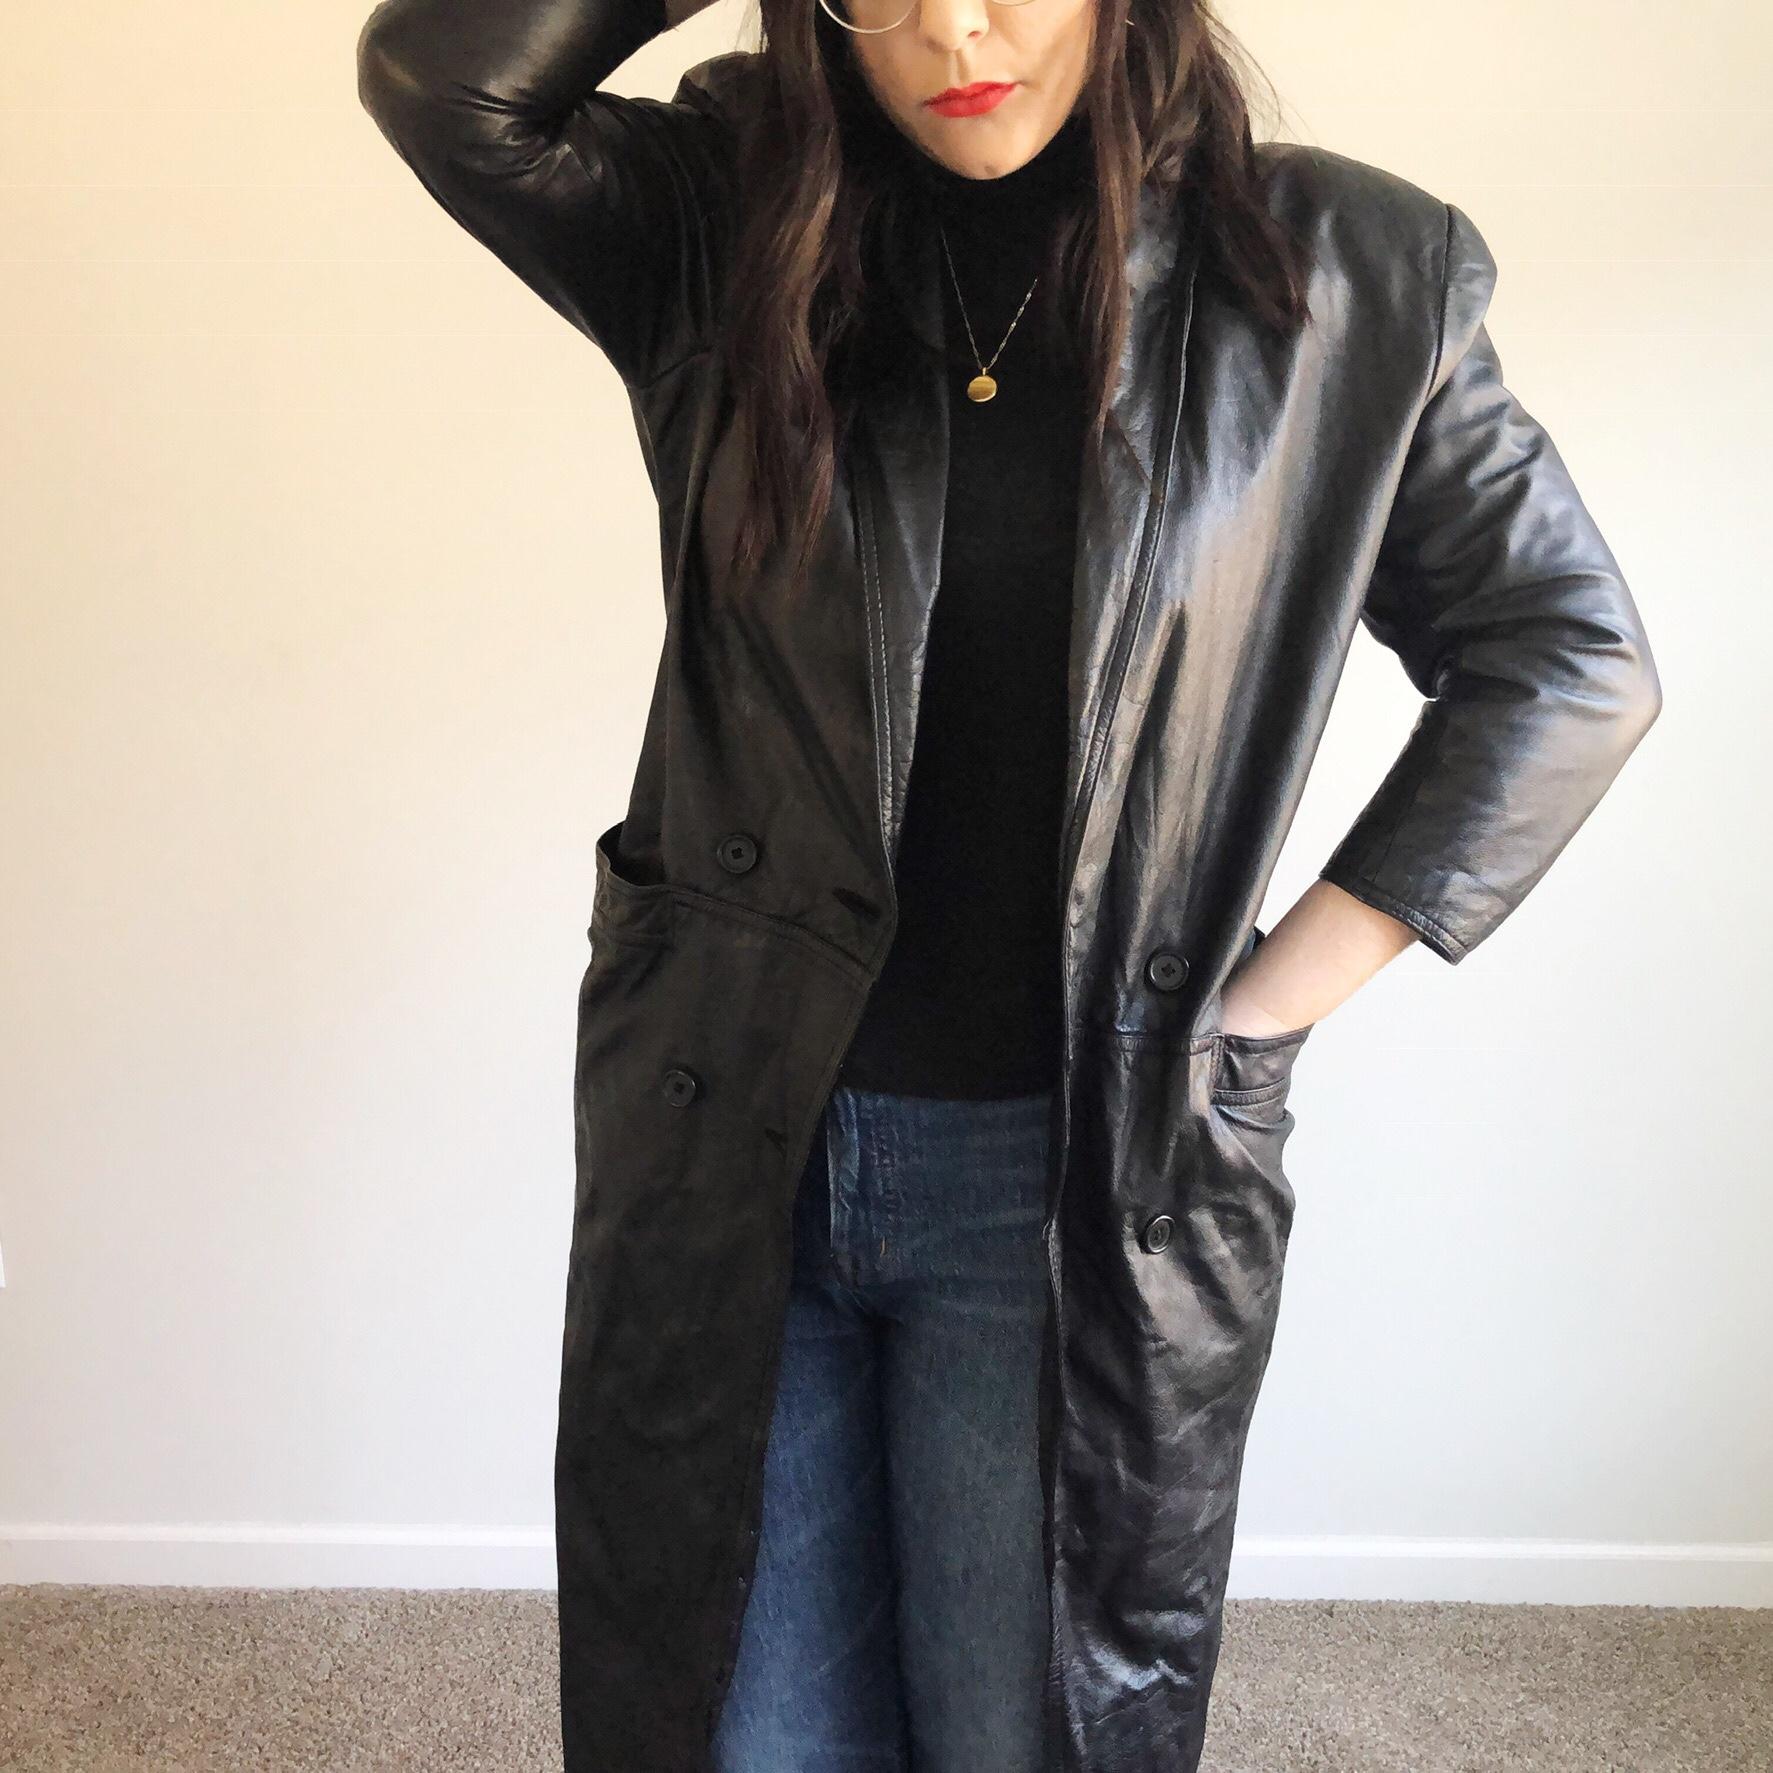 Vintage 1980s Asymmetrical Leather Trench Coat by Bagatelle Charcoal Gray Leather Long Trench Coat Steel Gray Leather Coat w Quilted Lining